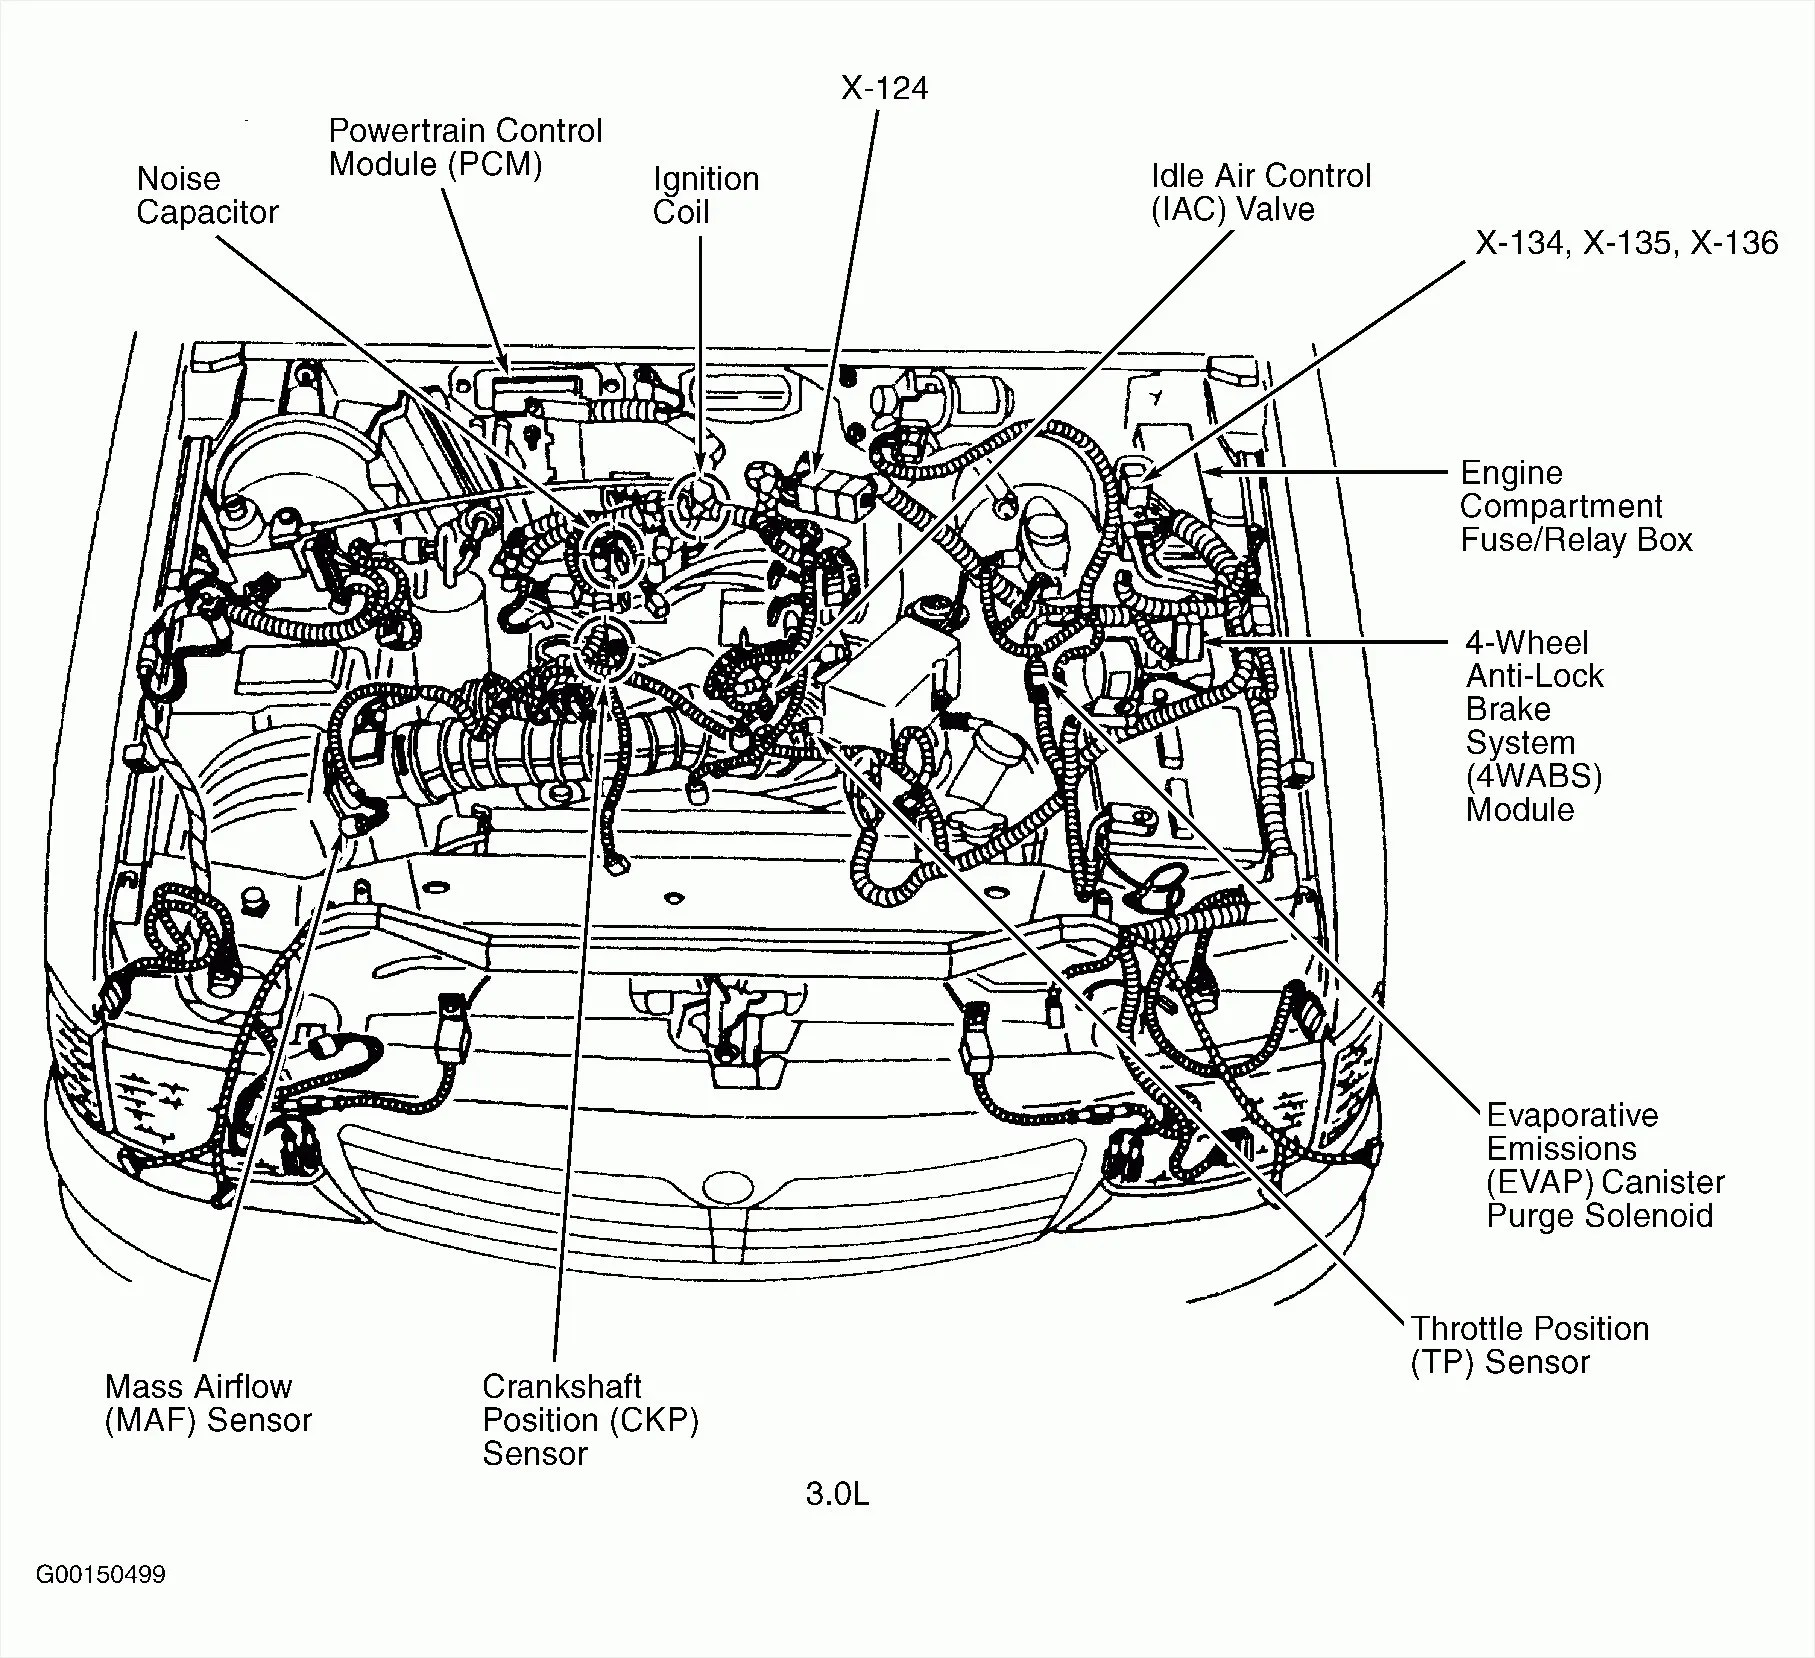 hight resolution of 95 ford windstar 3 8 engine diagram wiring diagram expert 2001 ford windstar engine diagram wiring